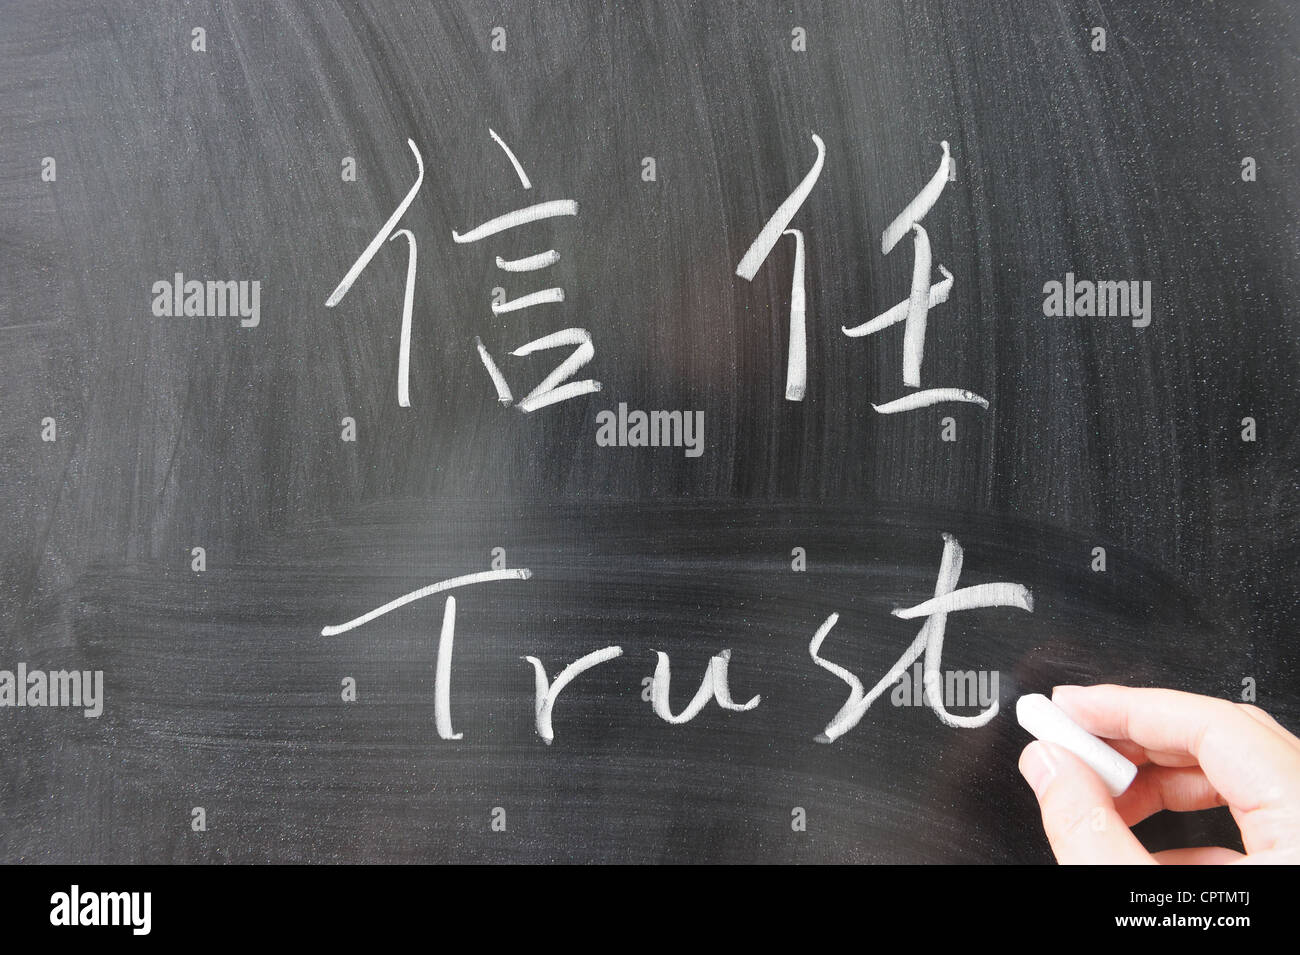 Trust word in Chinese and English written on the chalkboard - Stock Image